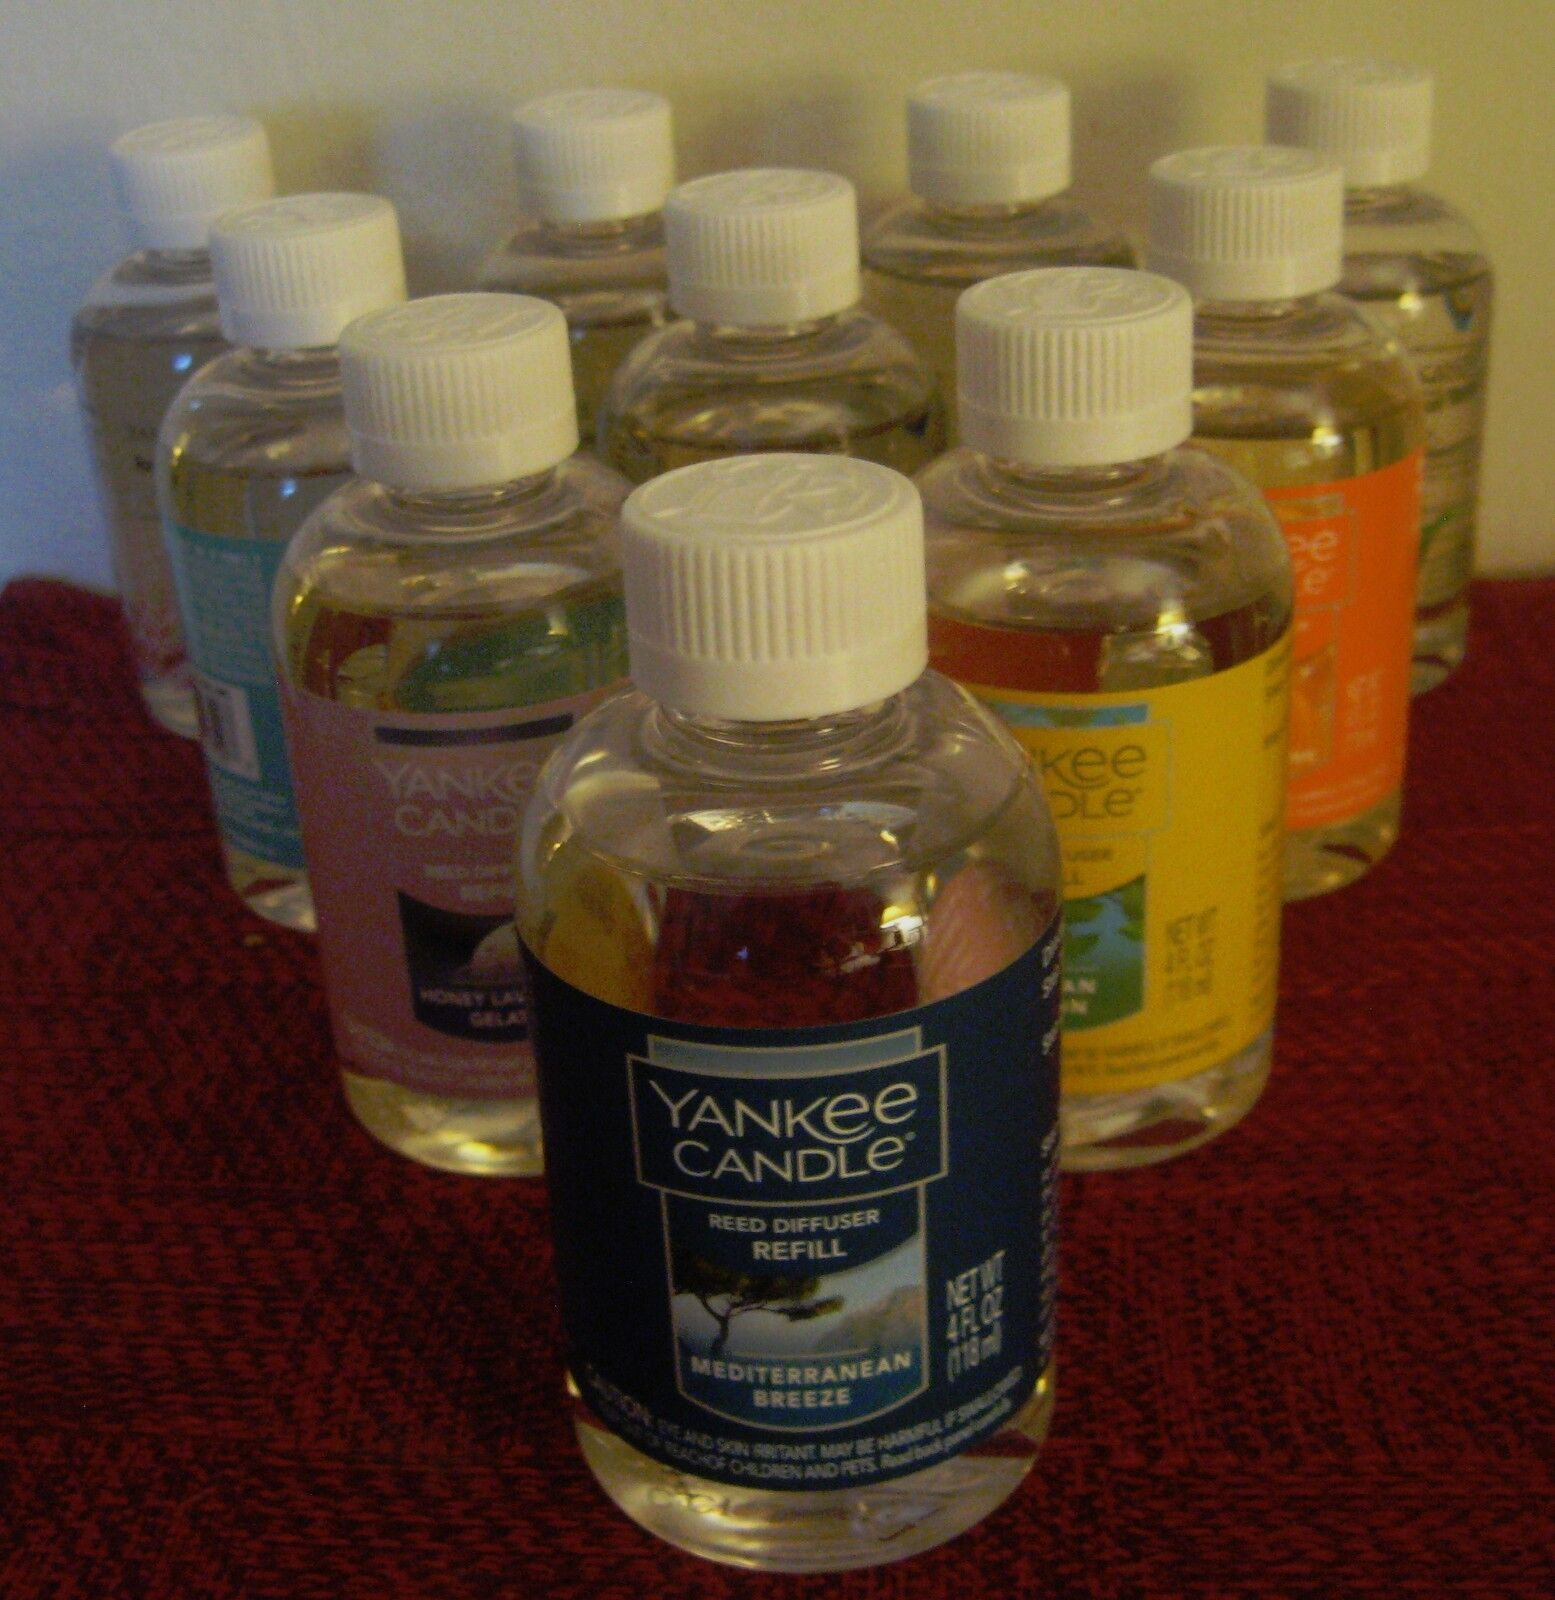 Yankee Candle Reed Diffuser Oil Refills - 4 oz Refill  - You Choose - Free Ship+